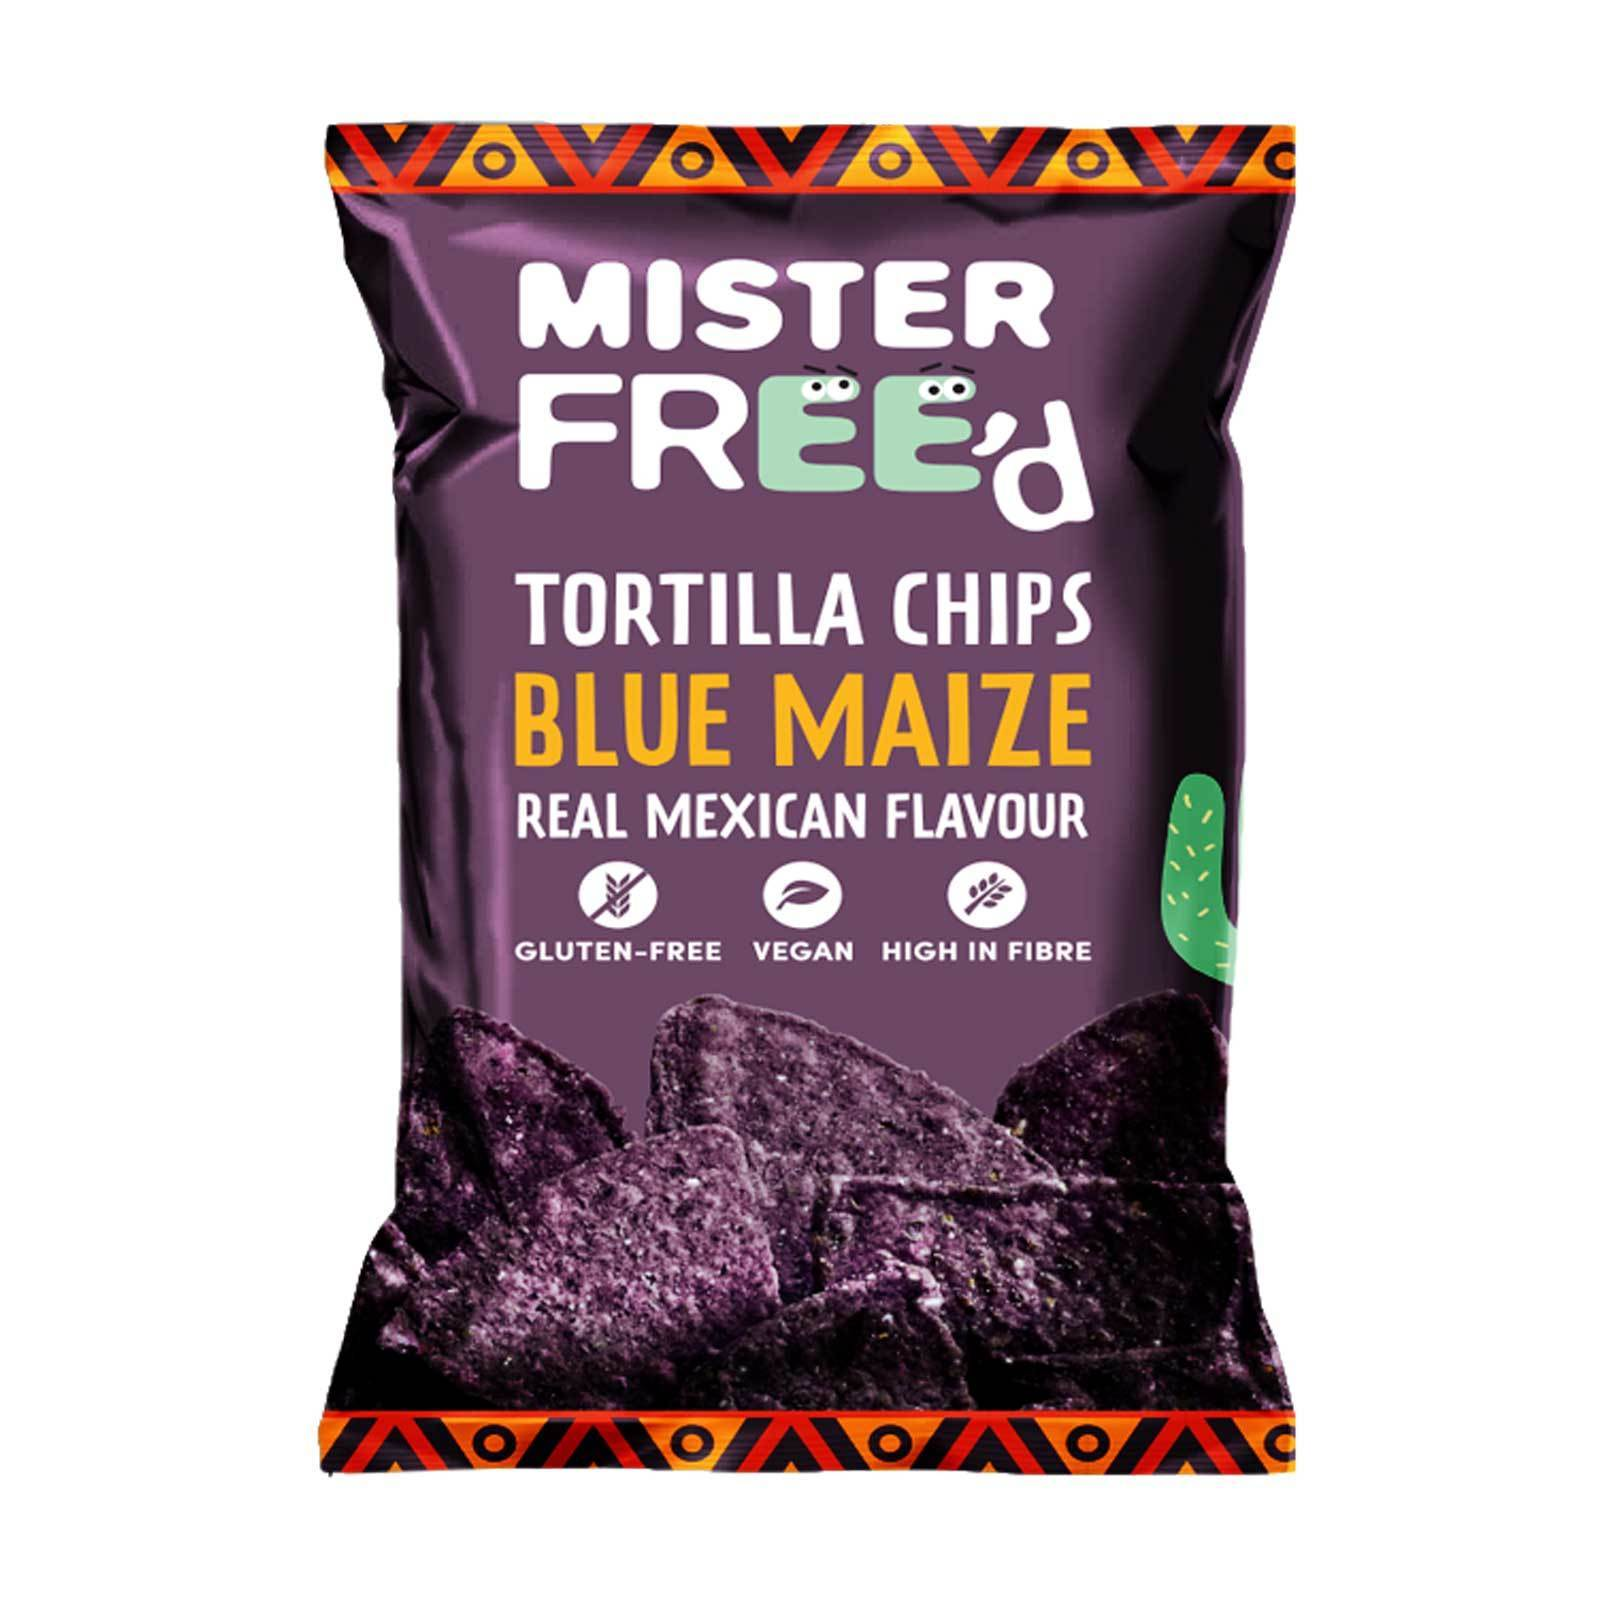 Mister Freed-Tortilla Chips Blue Maize Real Mexican Flavour (135g)